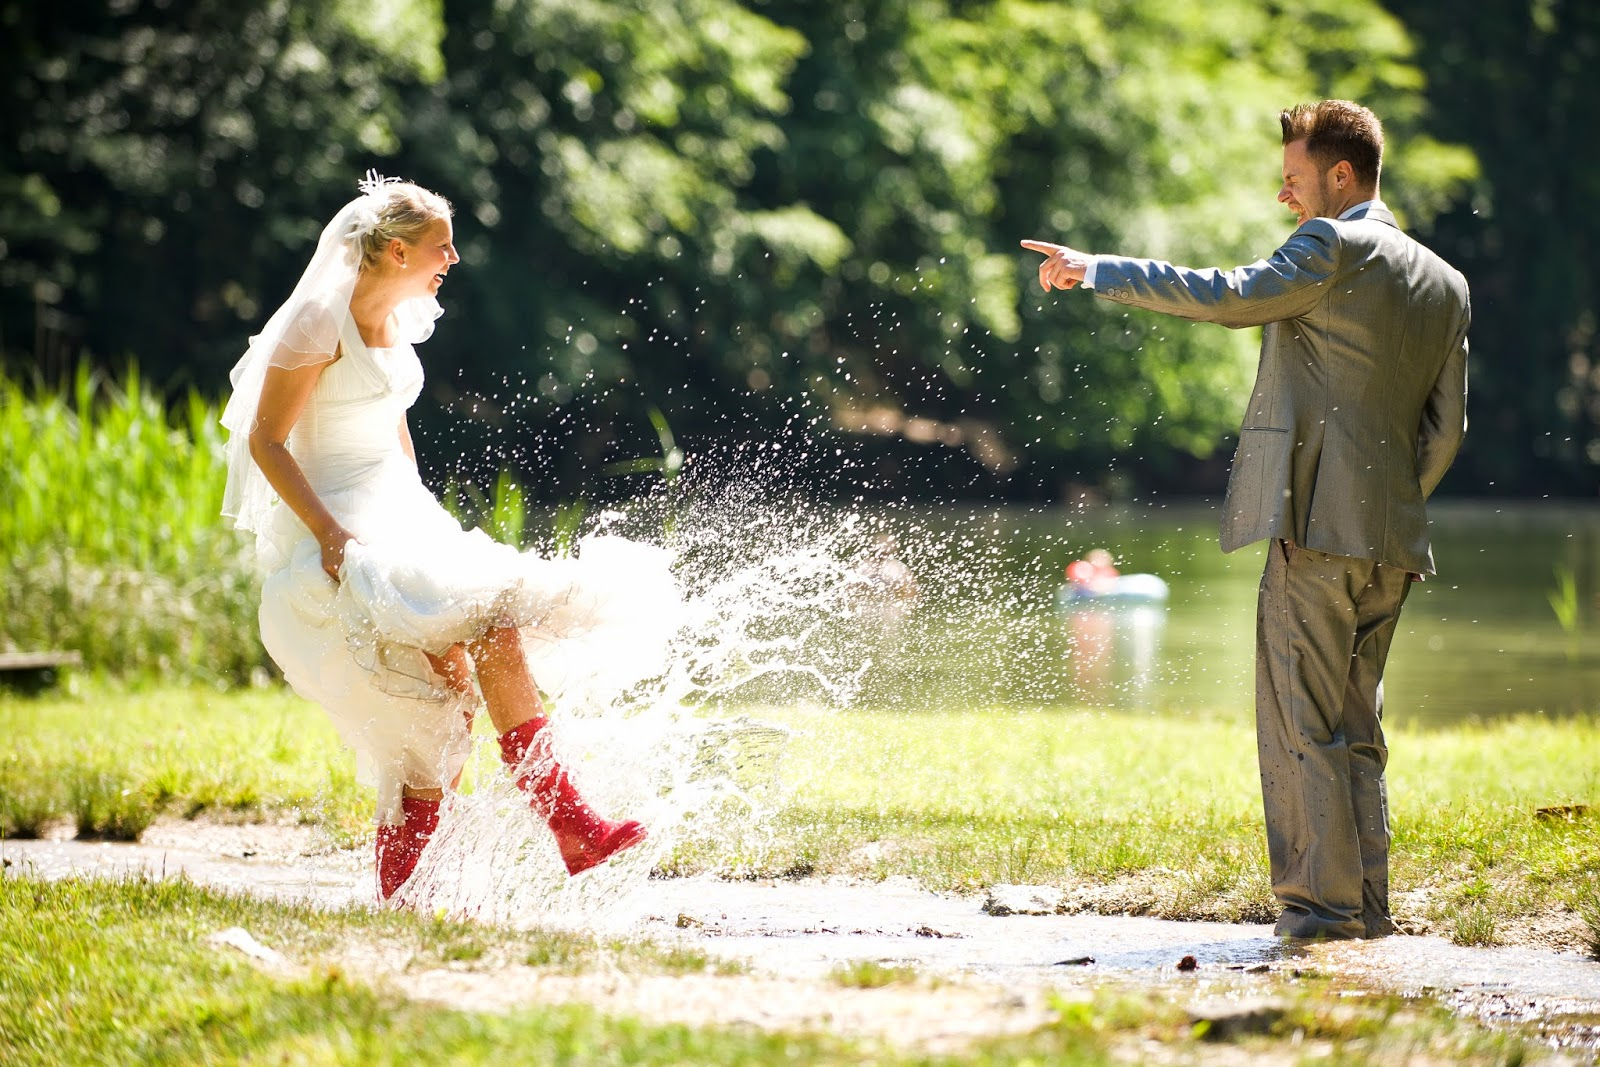 Rustic 4 Weddings Church House Woodworks Trash The Dress Splashing In Water Rainboots 2.jpg